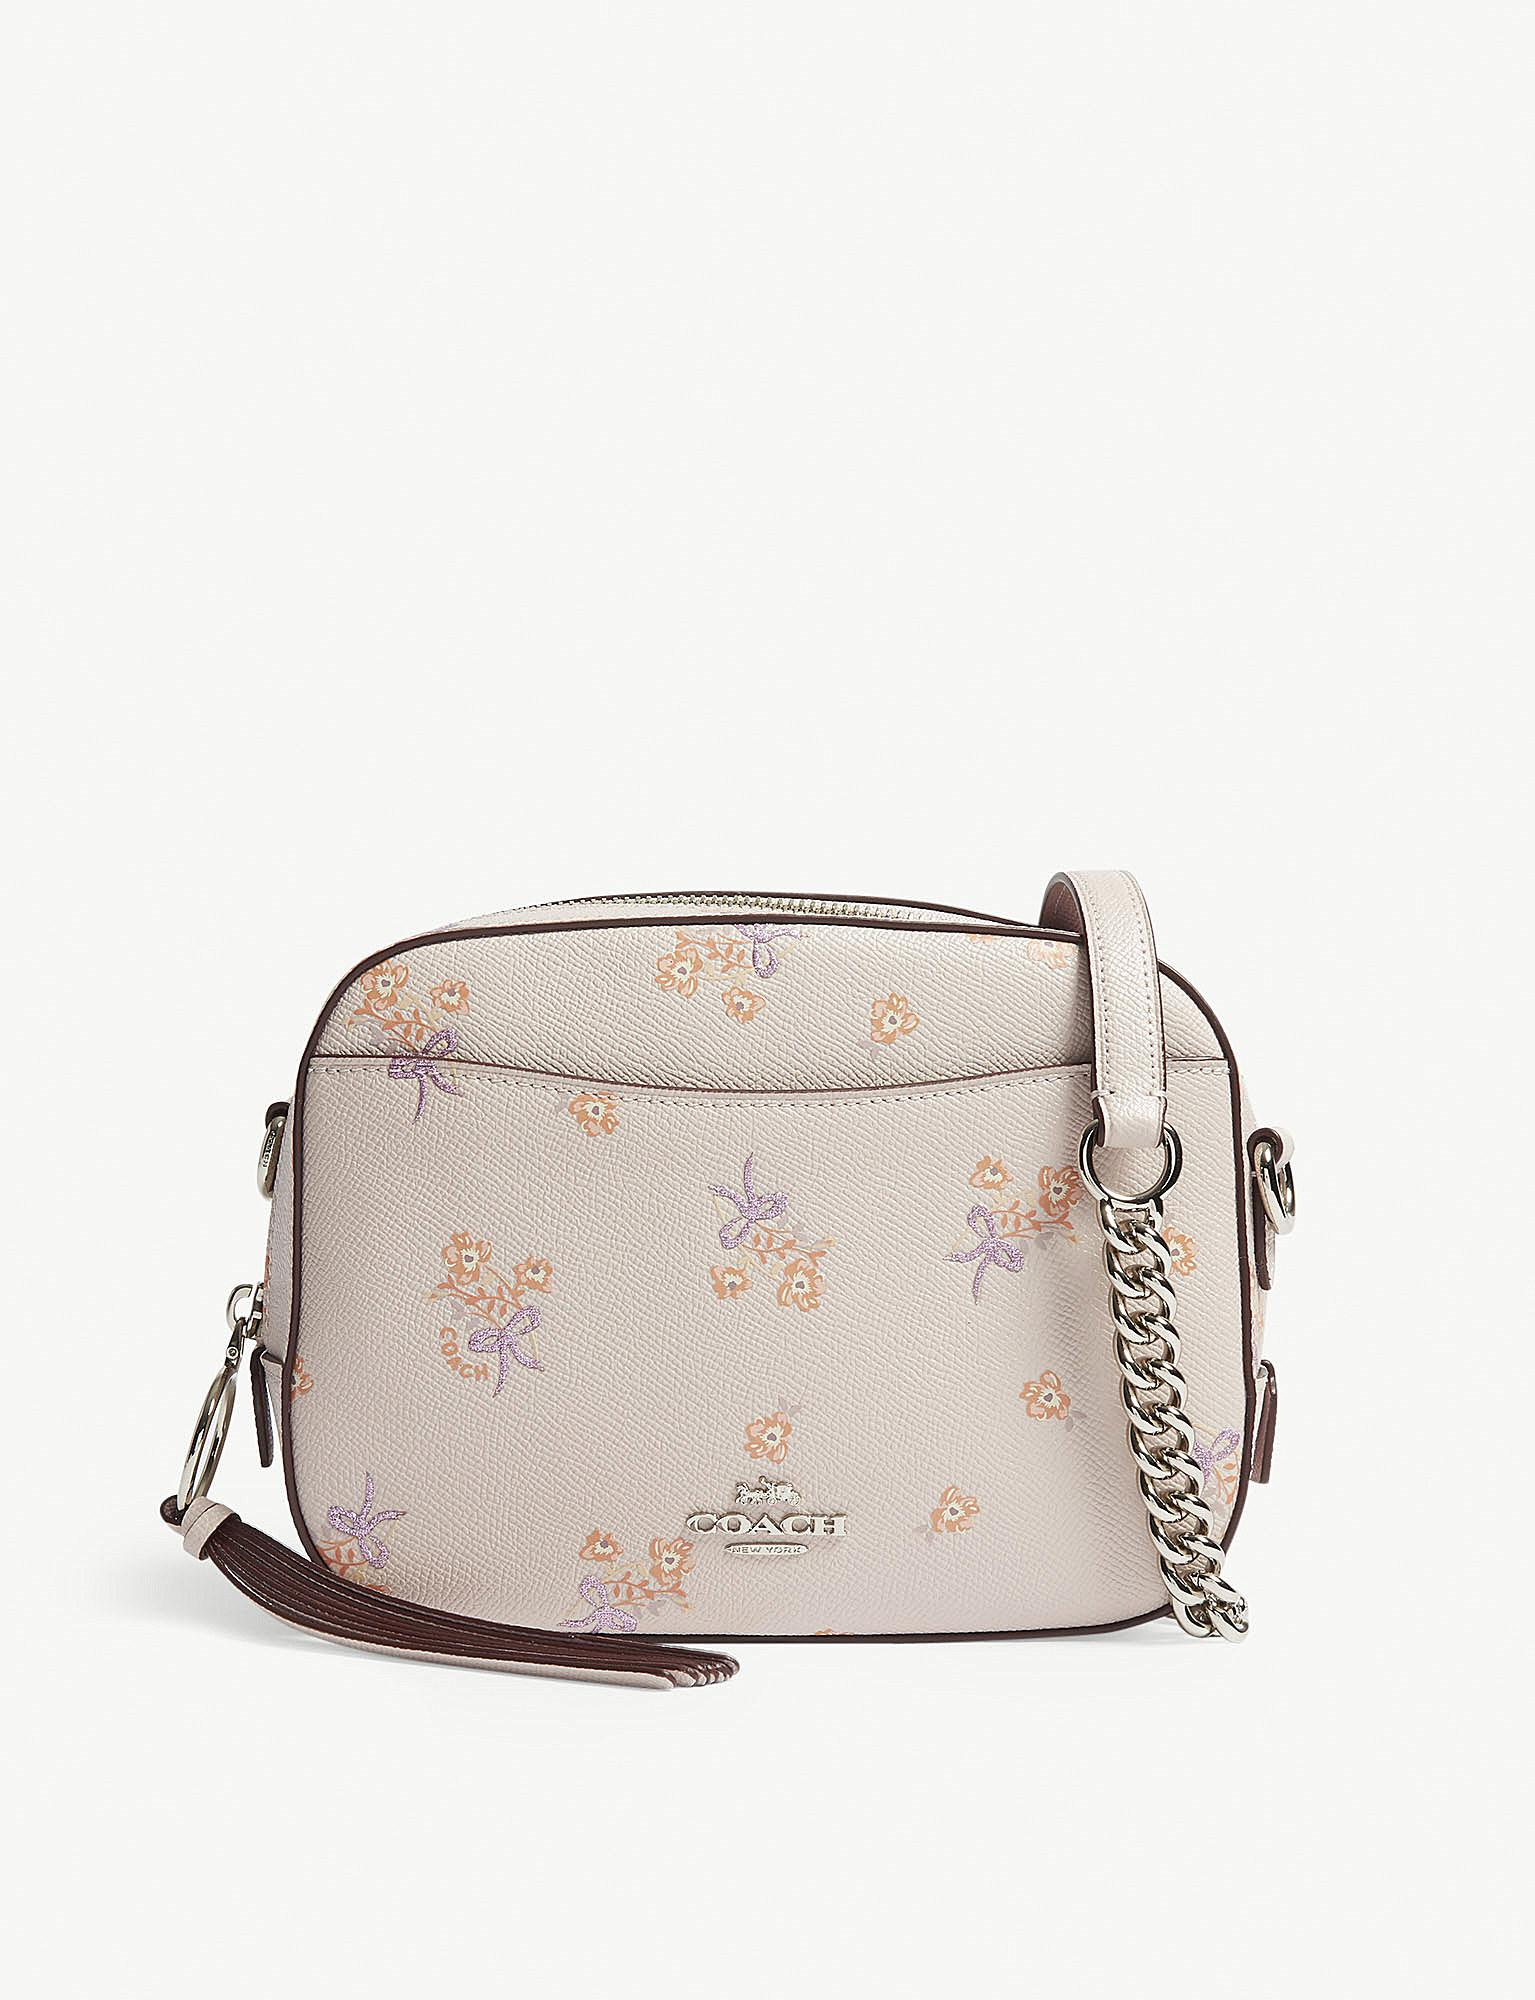 COACH. Women s Ladies Ice Pink Floral Elegant Leather Camera Cross-body Bag 702a533020ab8